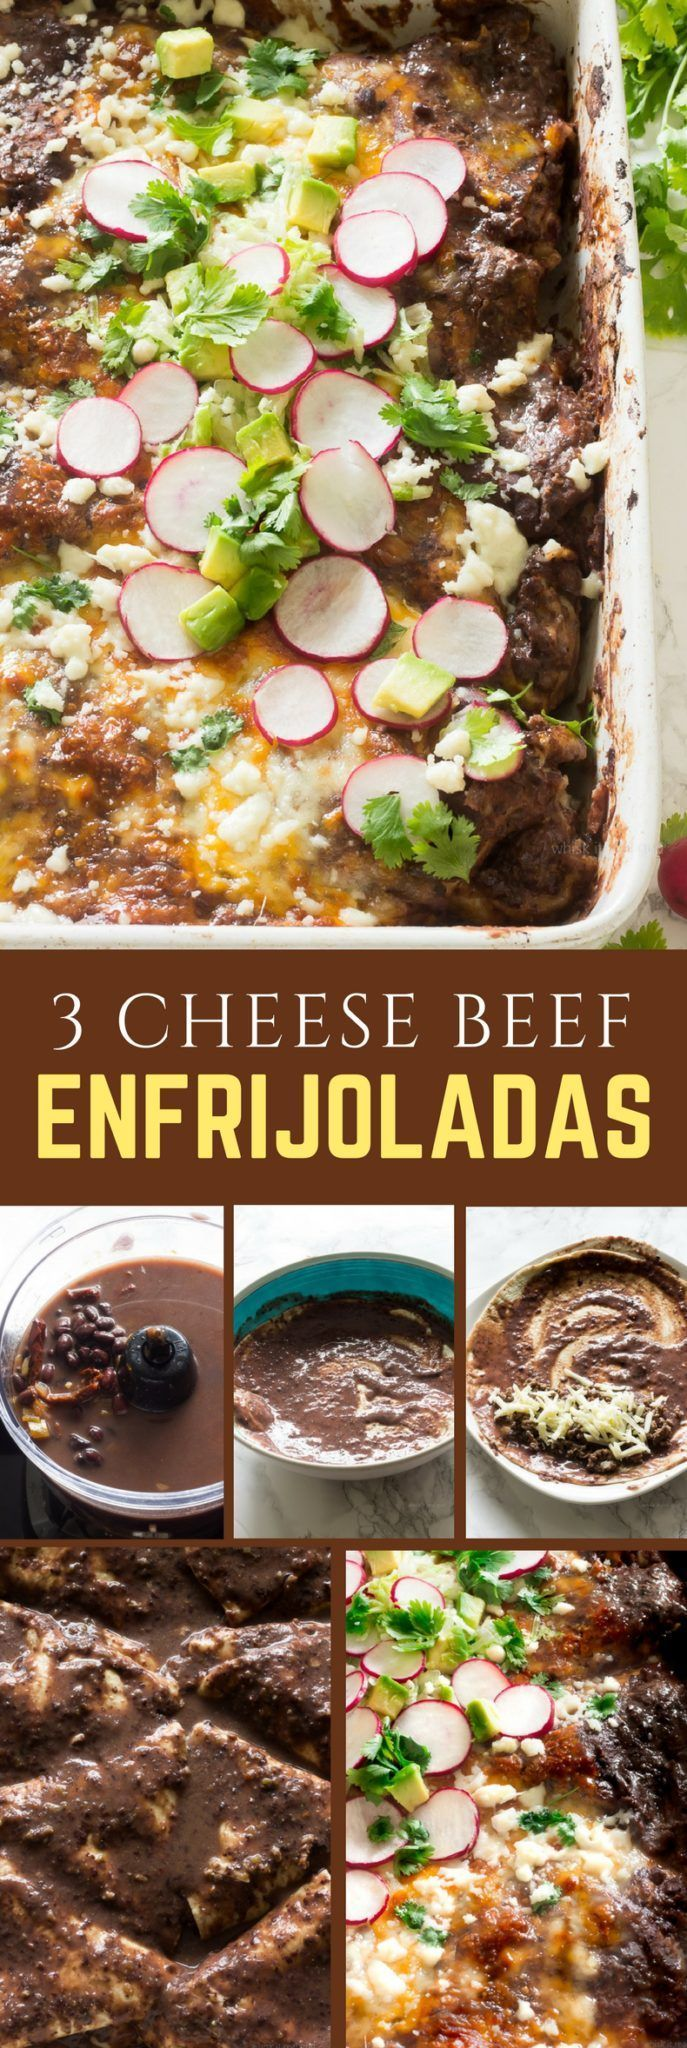 If you love Mexican food then you will love this enfrijolada recipe. Enfrijoladas are similar to enchiladas. Instead of using enchilada sauce, black bean sauce is used. They are traditionally made using corn tortillas, with chorizo, chicken or cheese slathered in a black bean or pinto bean sauce, topped with crumbled queso fresco. You can serve enfrijoladas with salsa, shredded lettuce, avocado, cilantro, radishes, sour cream. Whatever you like. #mexicanrecipes #enfrijoladas #beefrecipes…